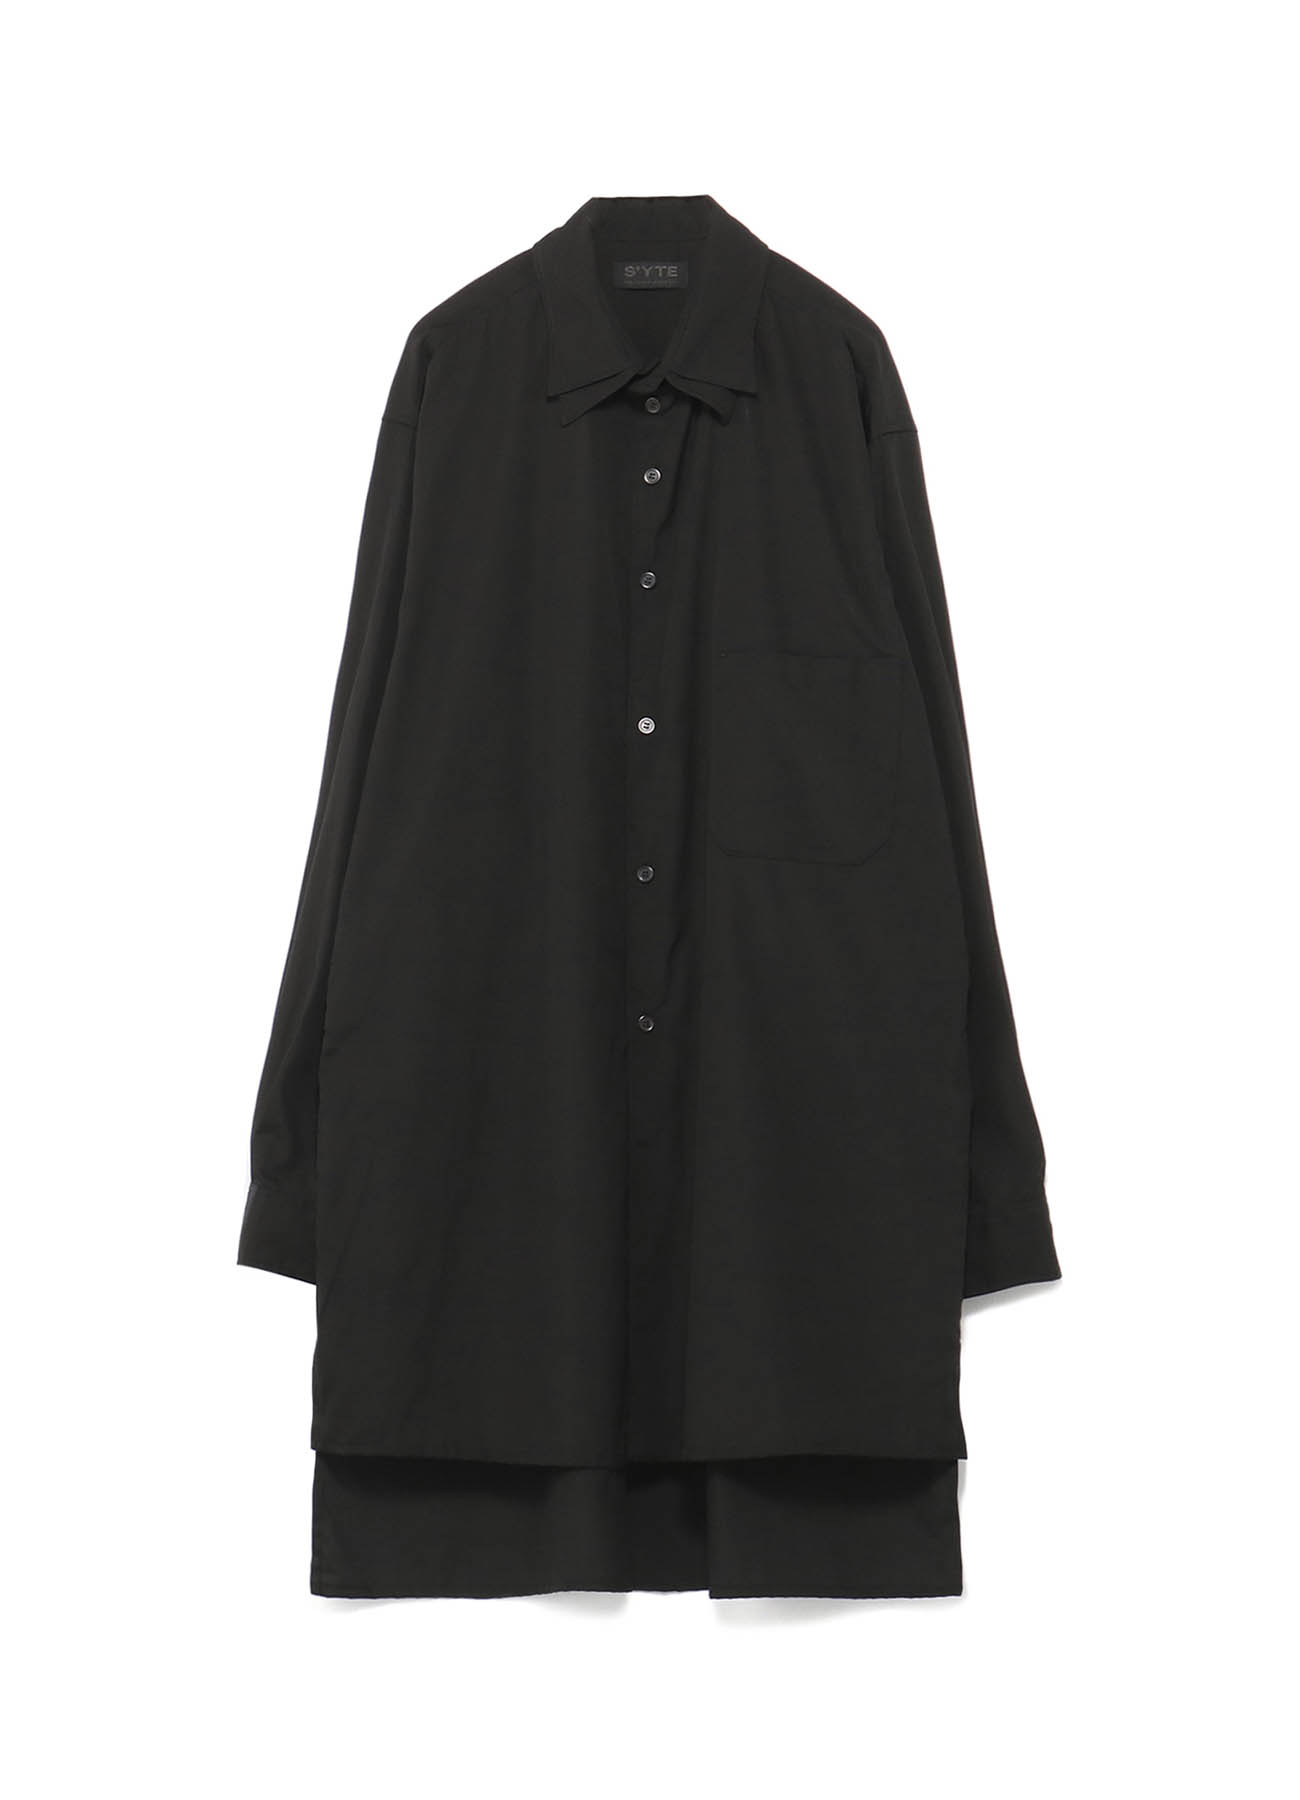 100/2 Broad Double Collar Big Shirt